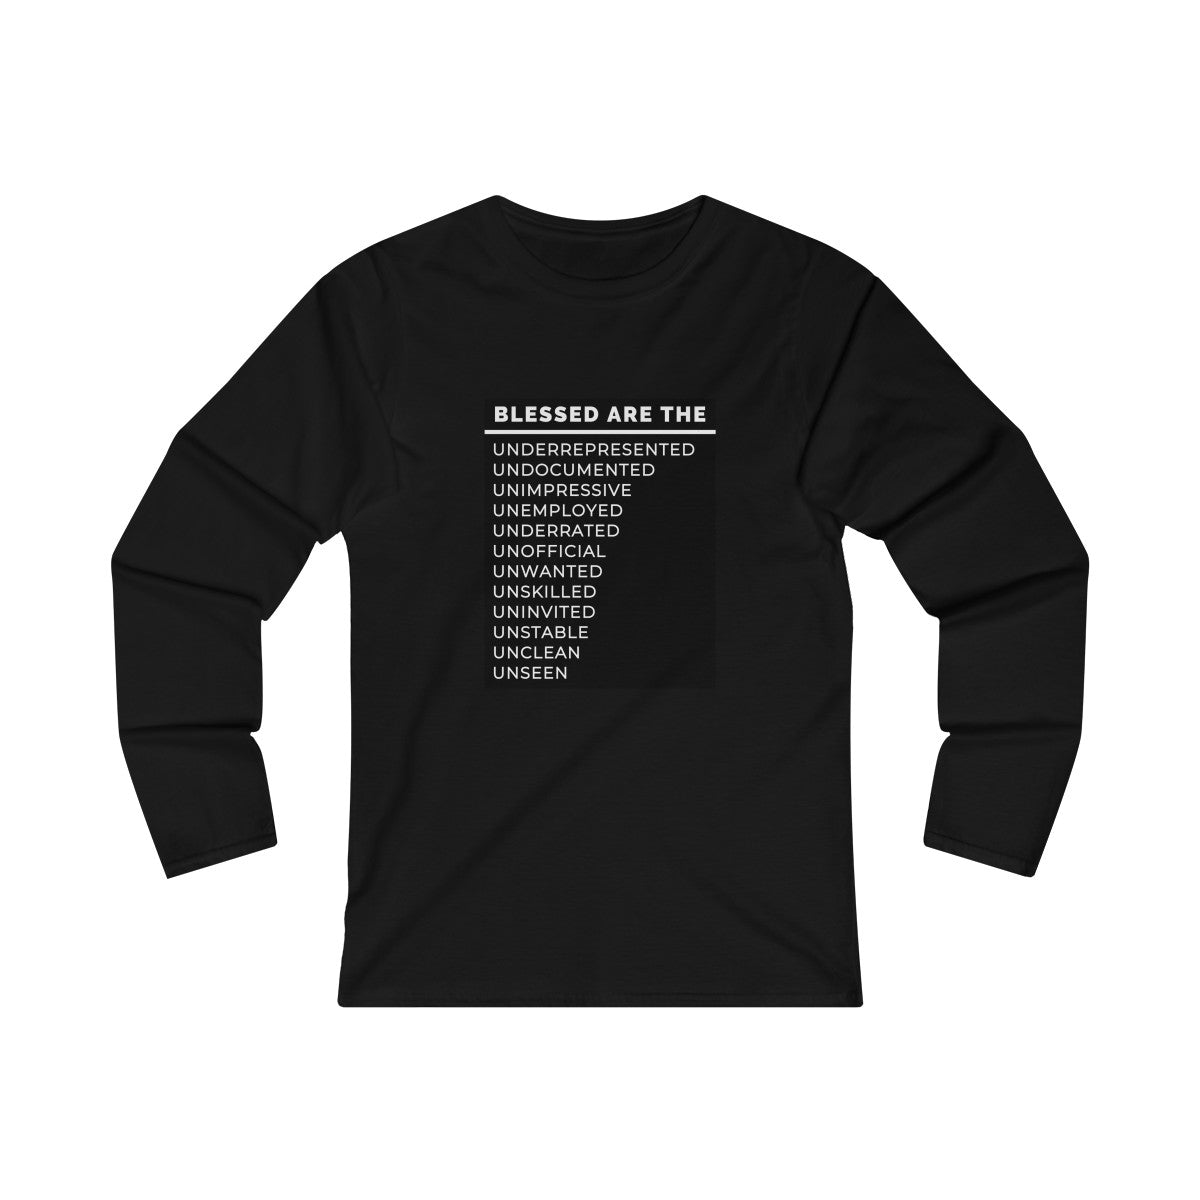 Blessed Are The Women's Fitted Long Sleeve Tee